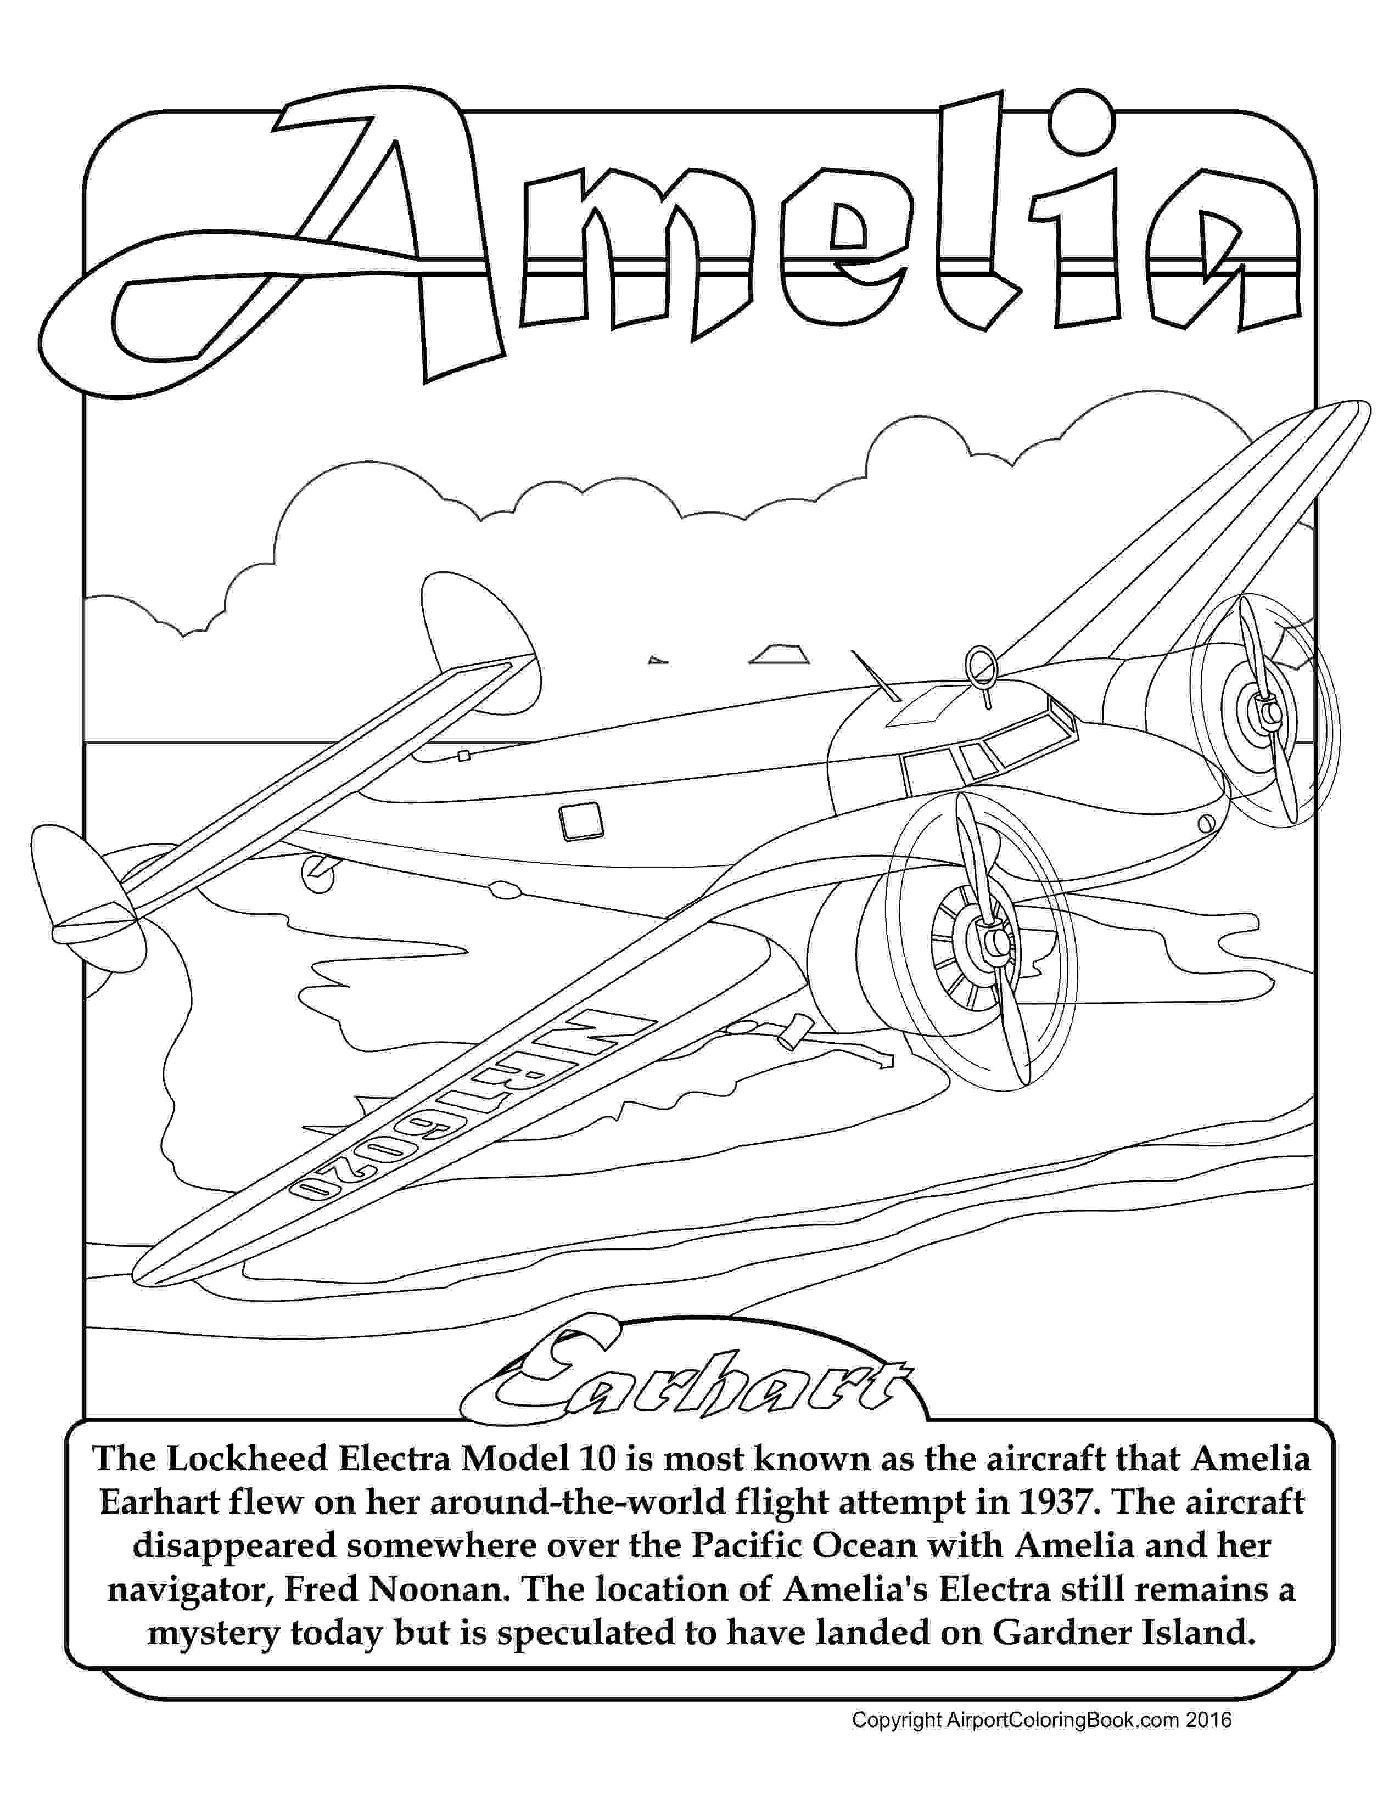 Airport Coloring Book Amelia Earhart Lockhead Electra For Coloring